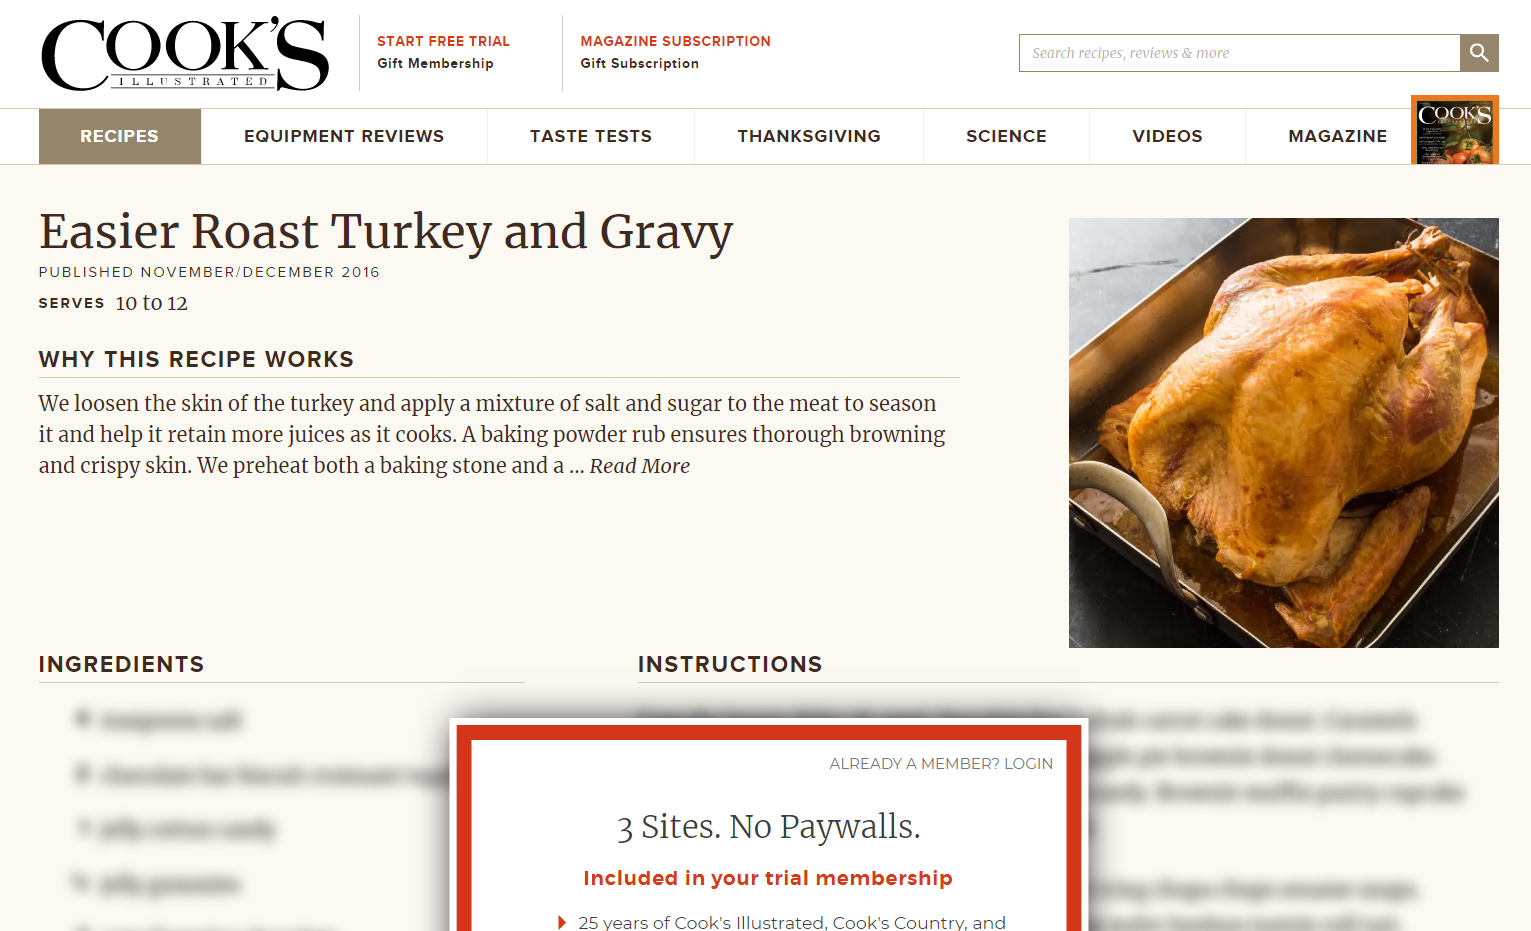 site teasing information behind a paywall.